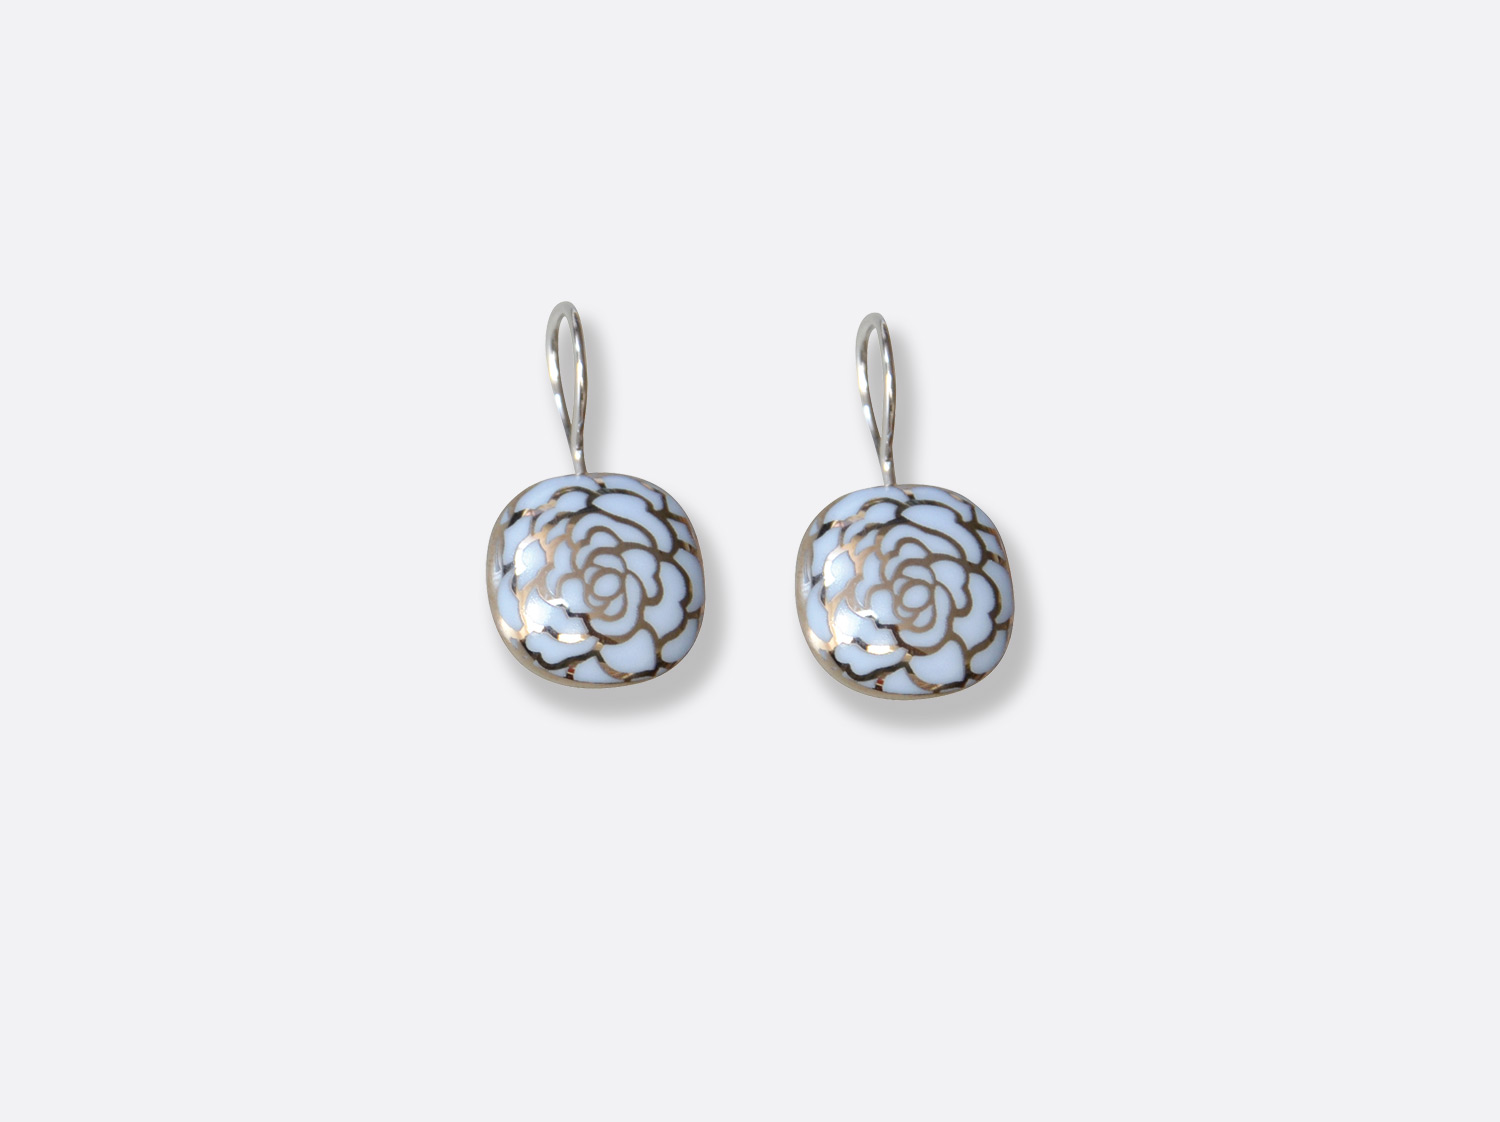 Boucles d'oreilles en porcelaine de la collection Gardenia Bleu Platine Bernardaud